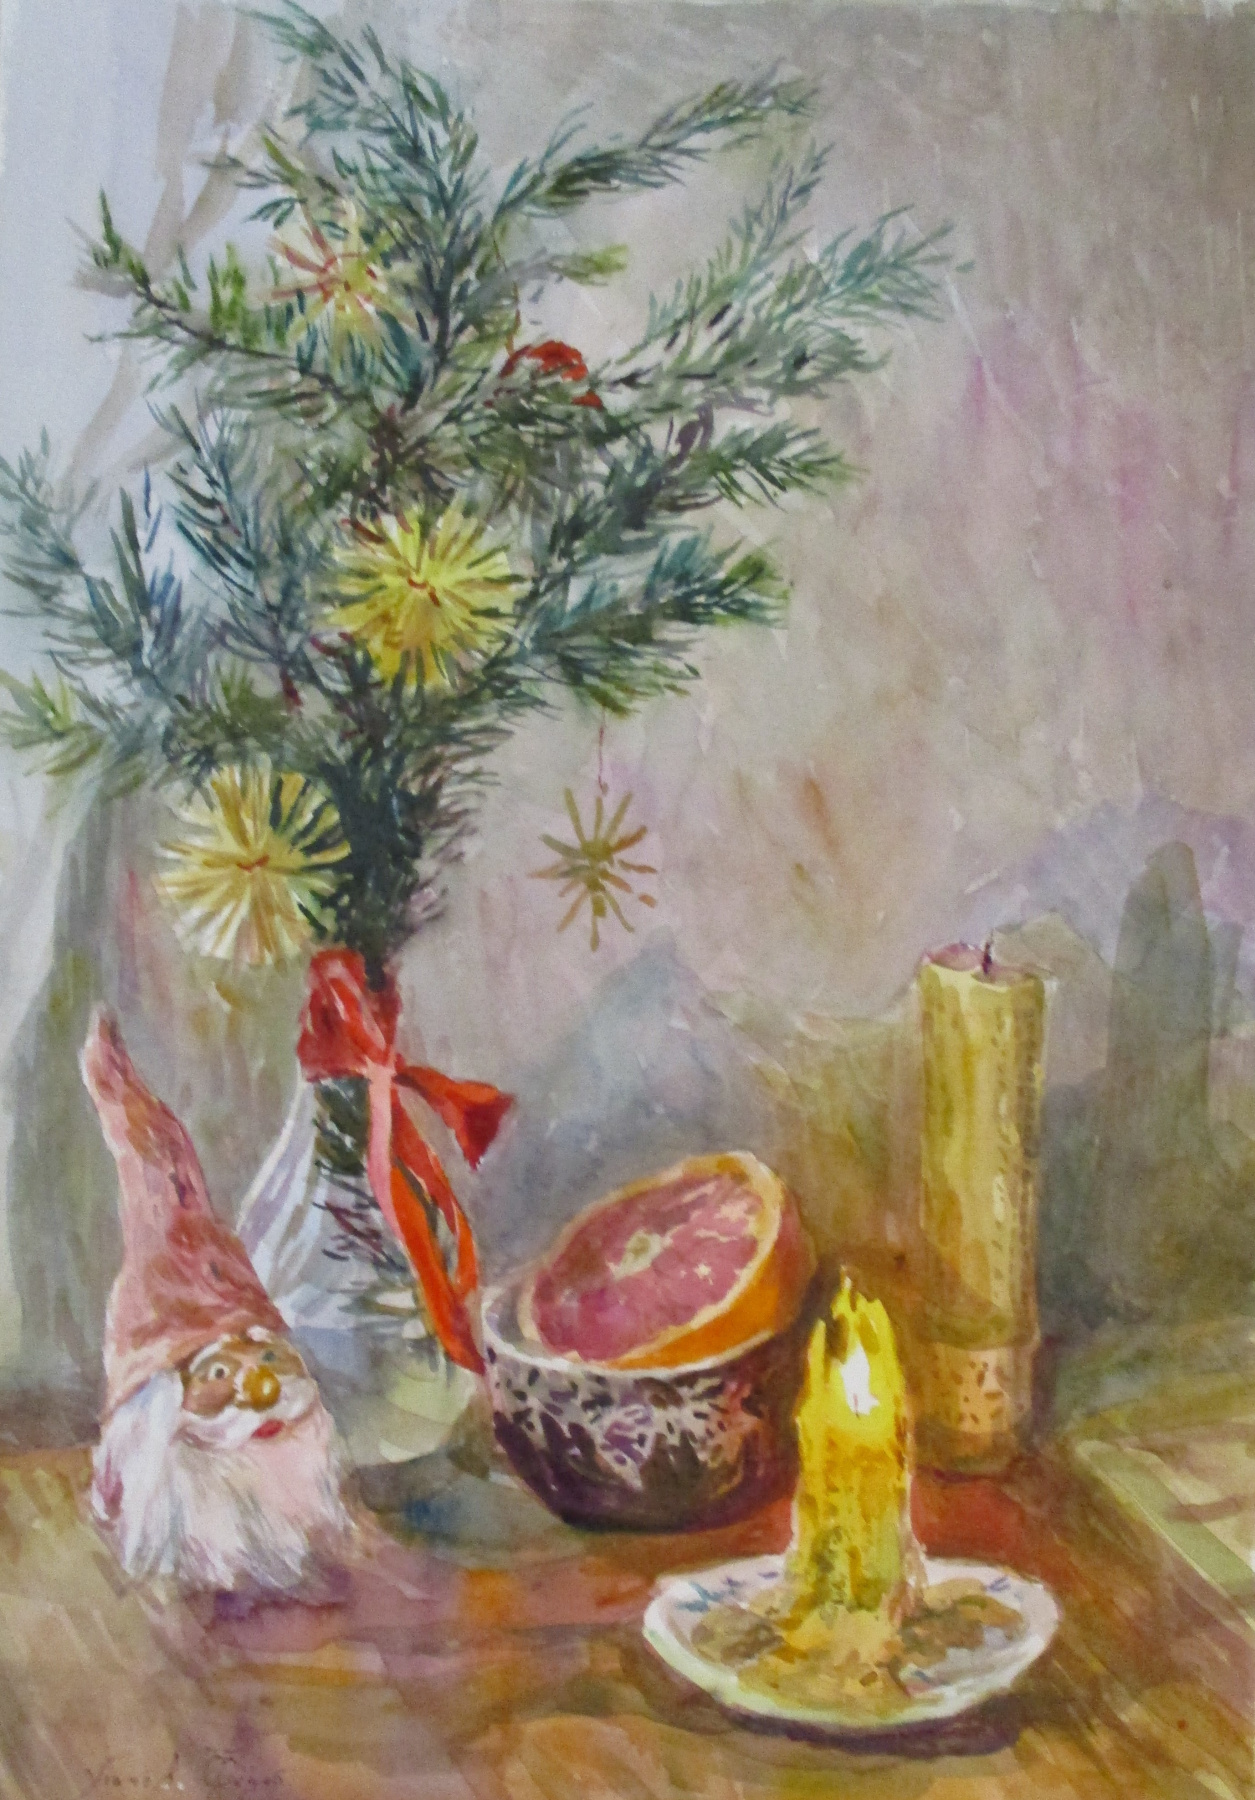 Fedor Dmitrievich Usachev. Magic Christmas candle and gnome.